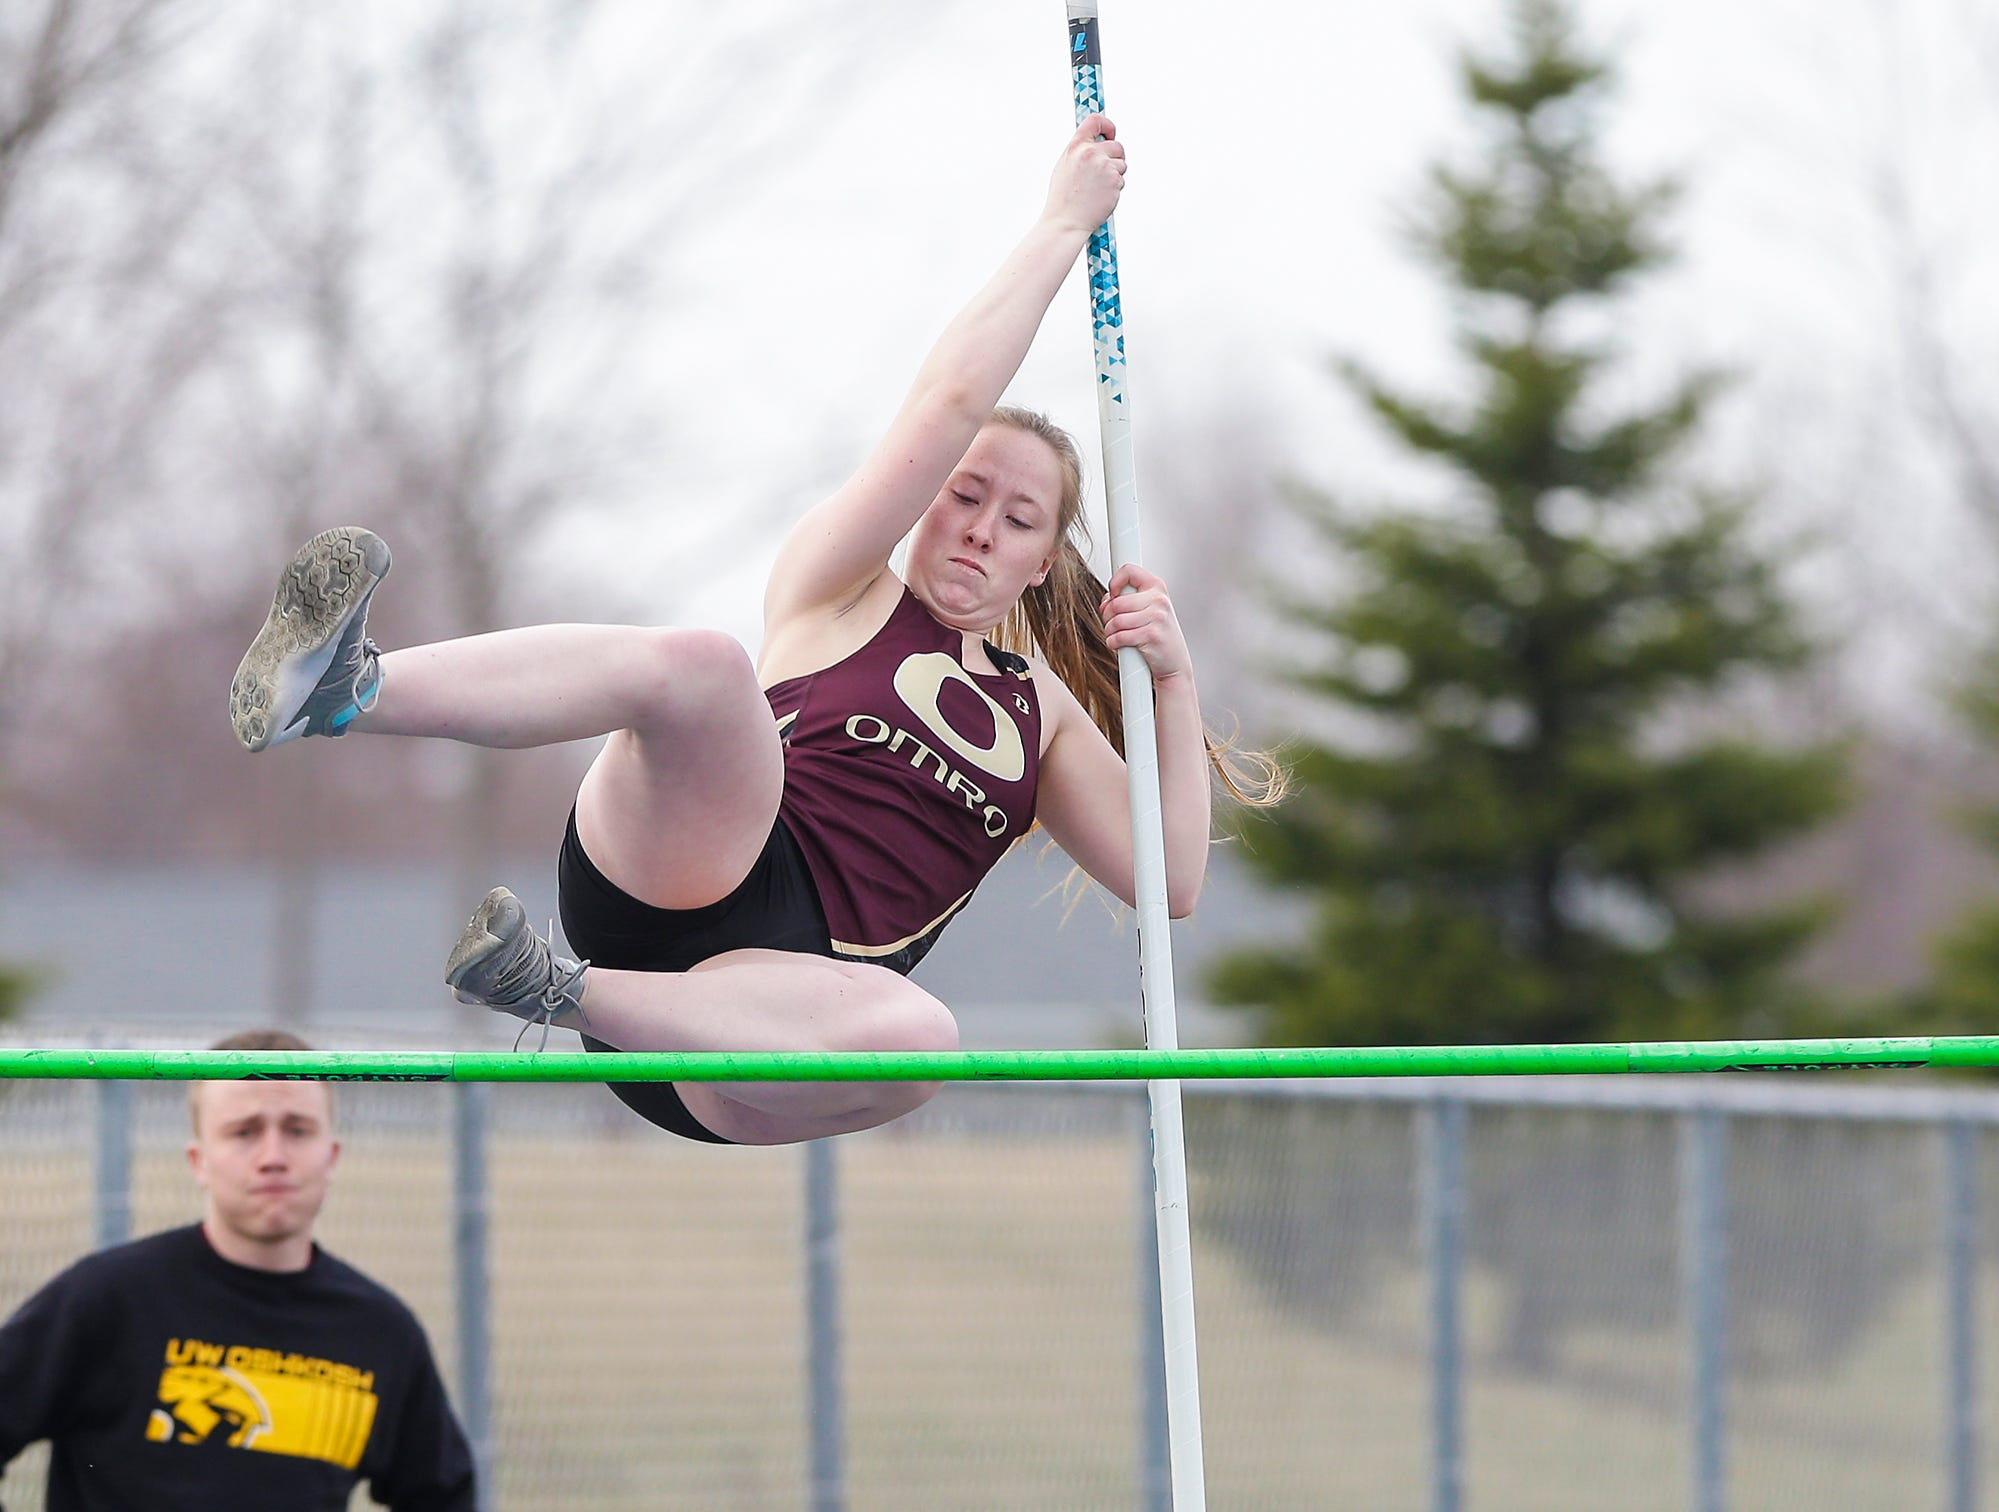 Omro High School's Jenna Hanson takes part in the pole vault Tuesday, April 16, 2019 at North Fond du Lac High School in North Fond du Lac, Wis. Doug Raflik/USA TODAY NETWORK-Wisconsin